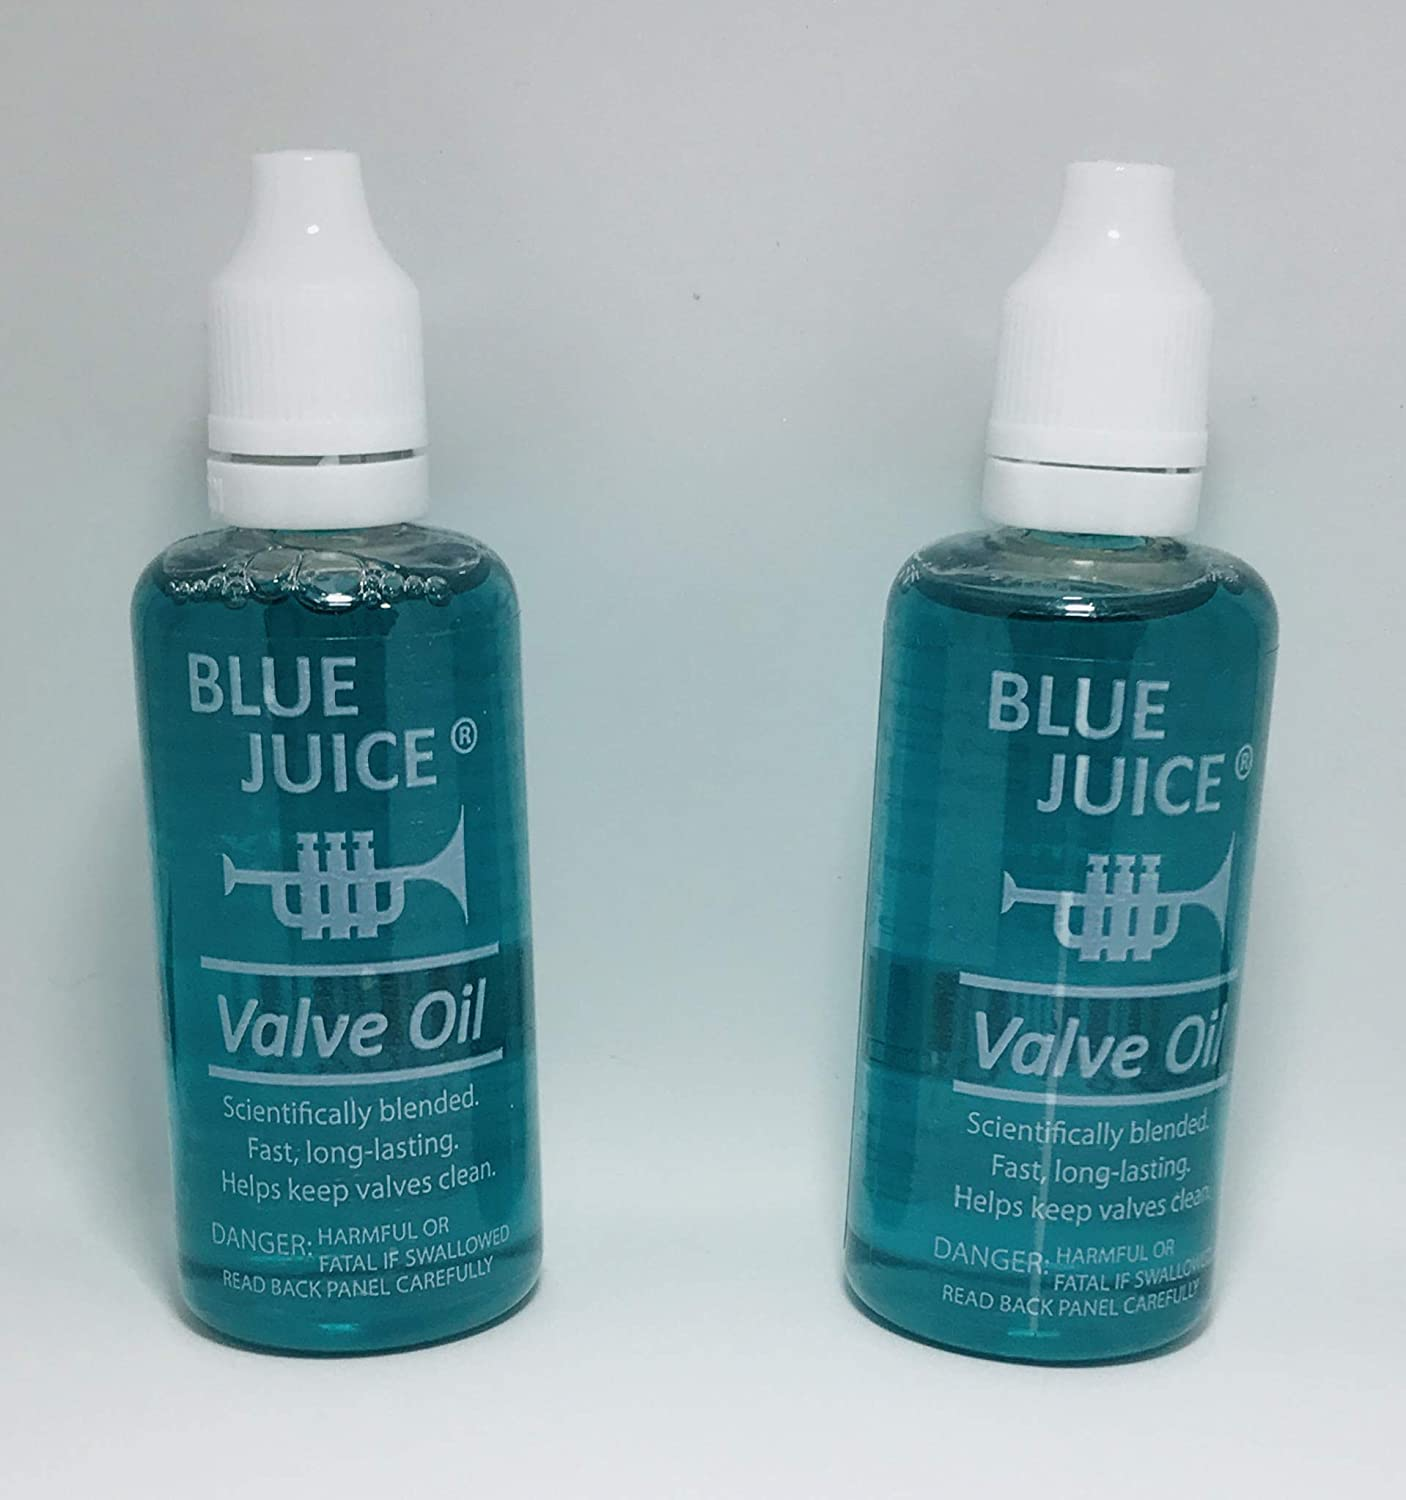 Blue Juice 2 Fluid Oz. Trumpet Valve Oil 2 Pack